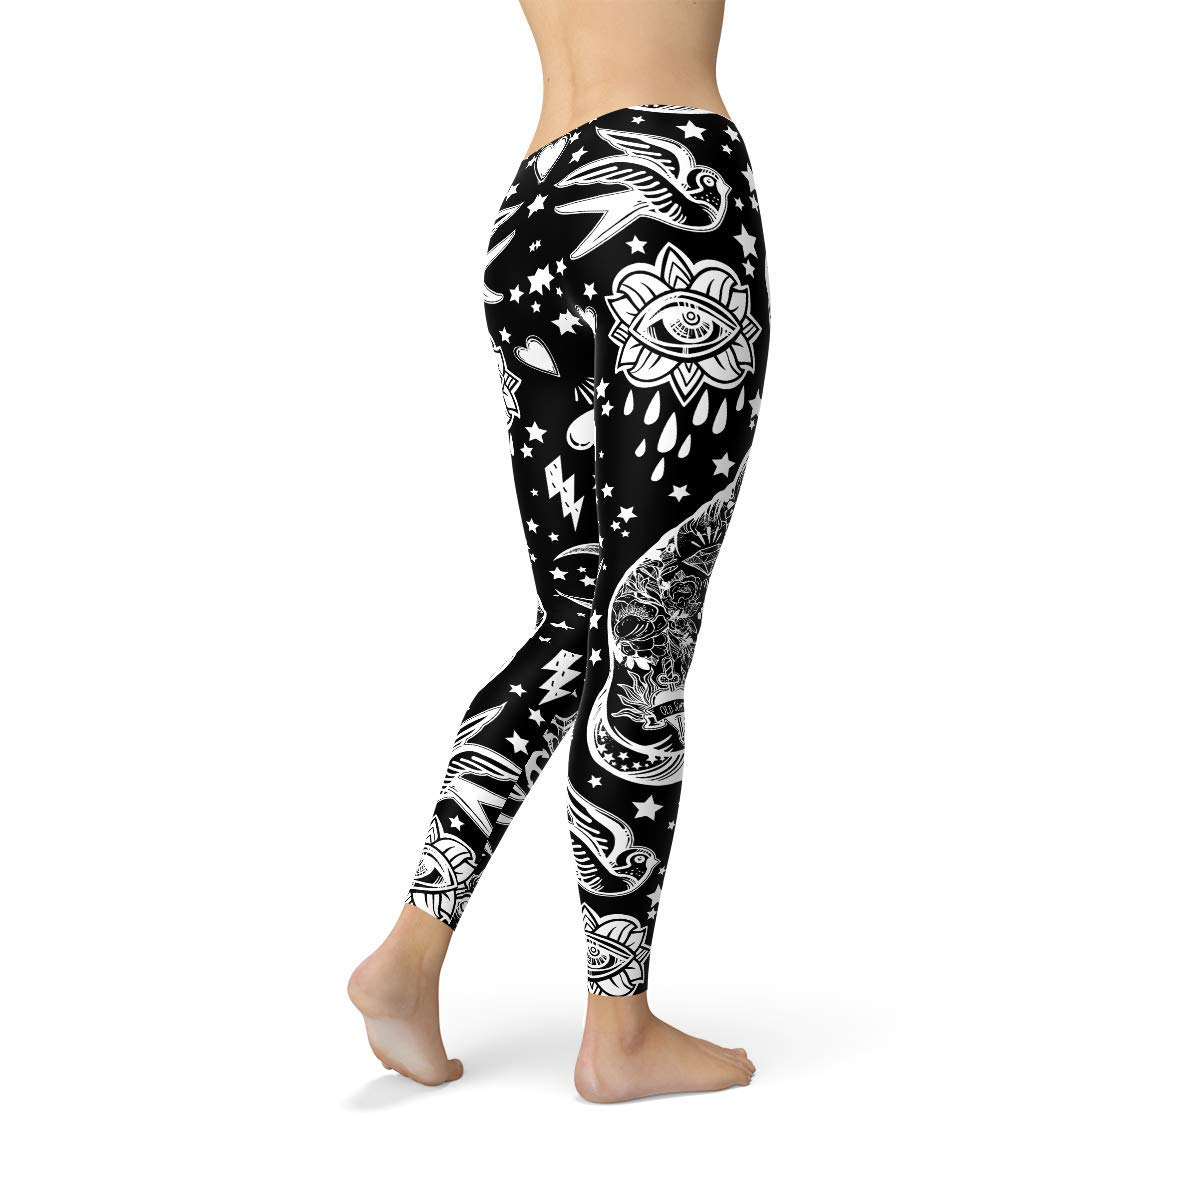 768e3f2305f55 Wicked Witch Leggings for Women Witchcraft Gothic Clothing Black Cat Yoga  Pants at Amazon Women's Clothing store: